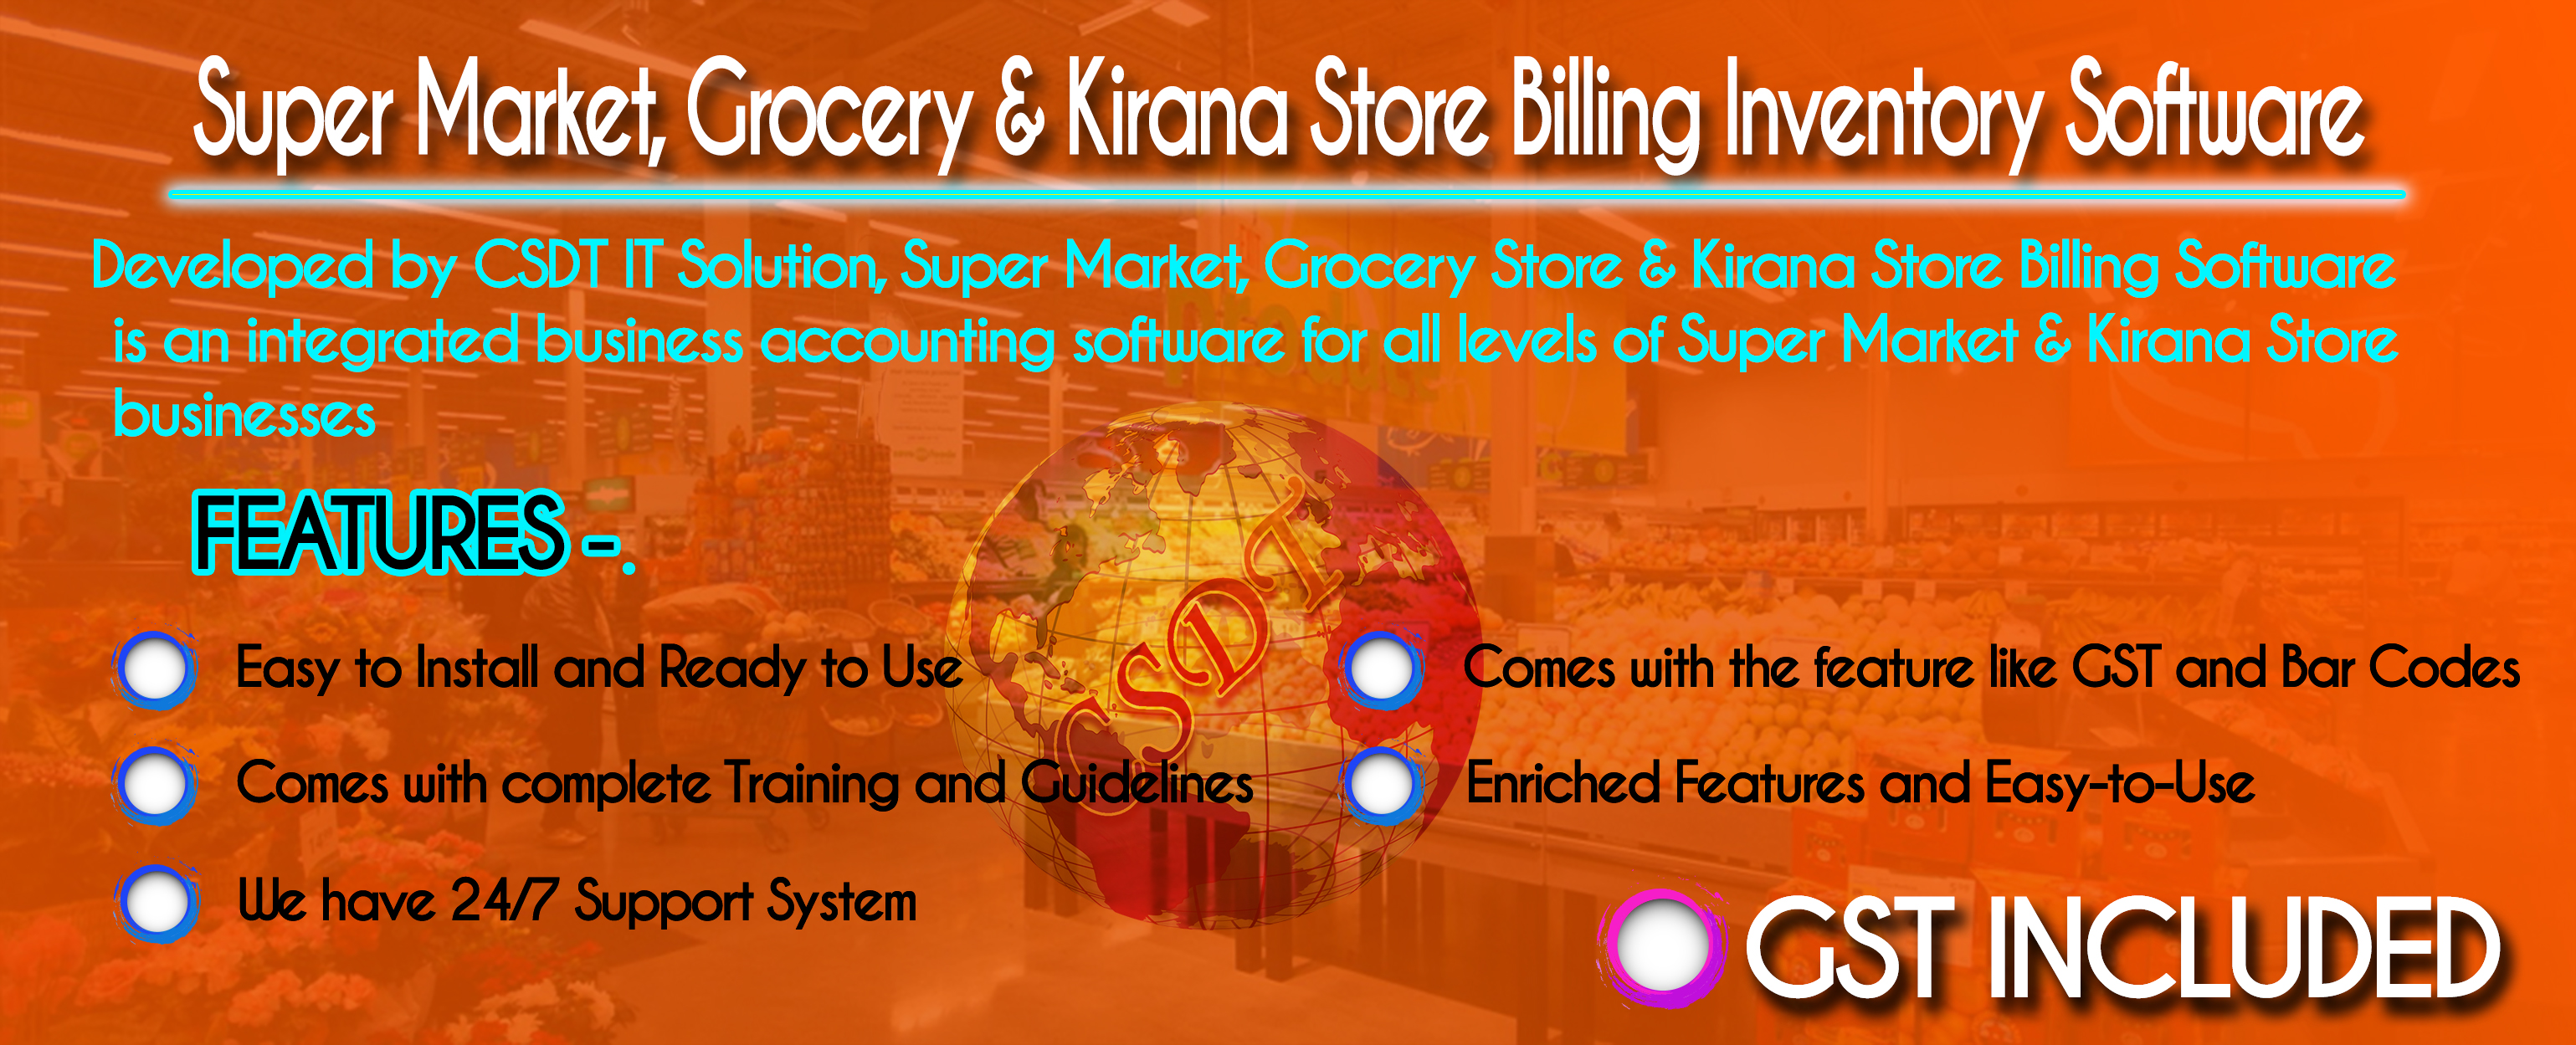 Super Market & Grocery Store Billing  Software